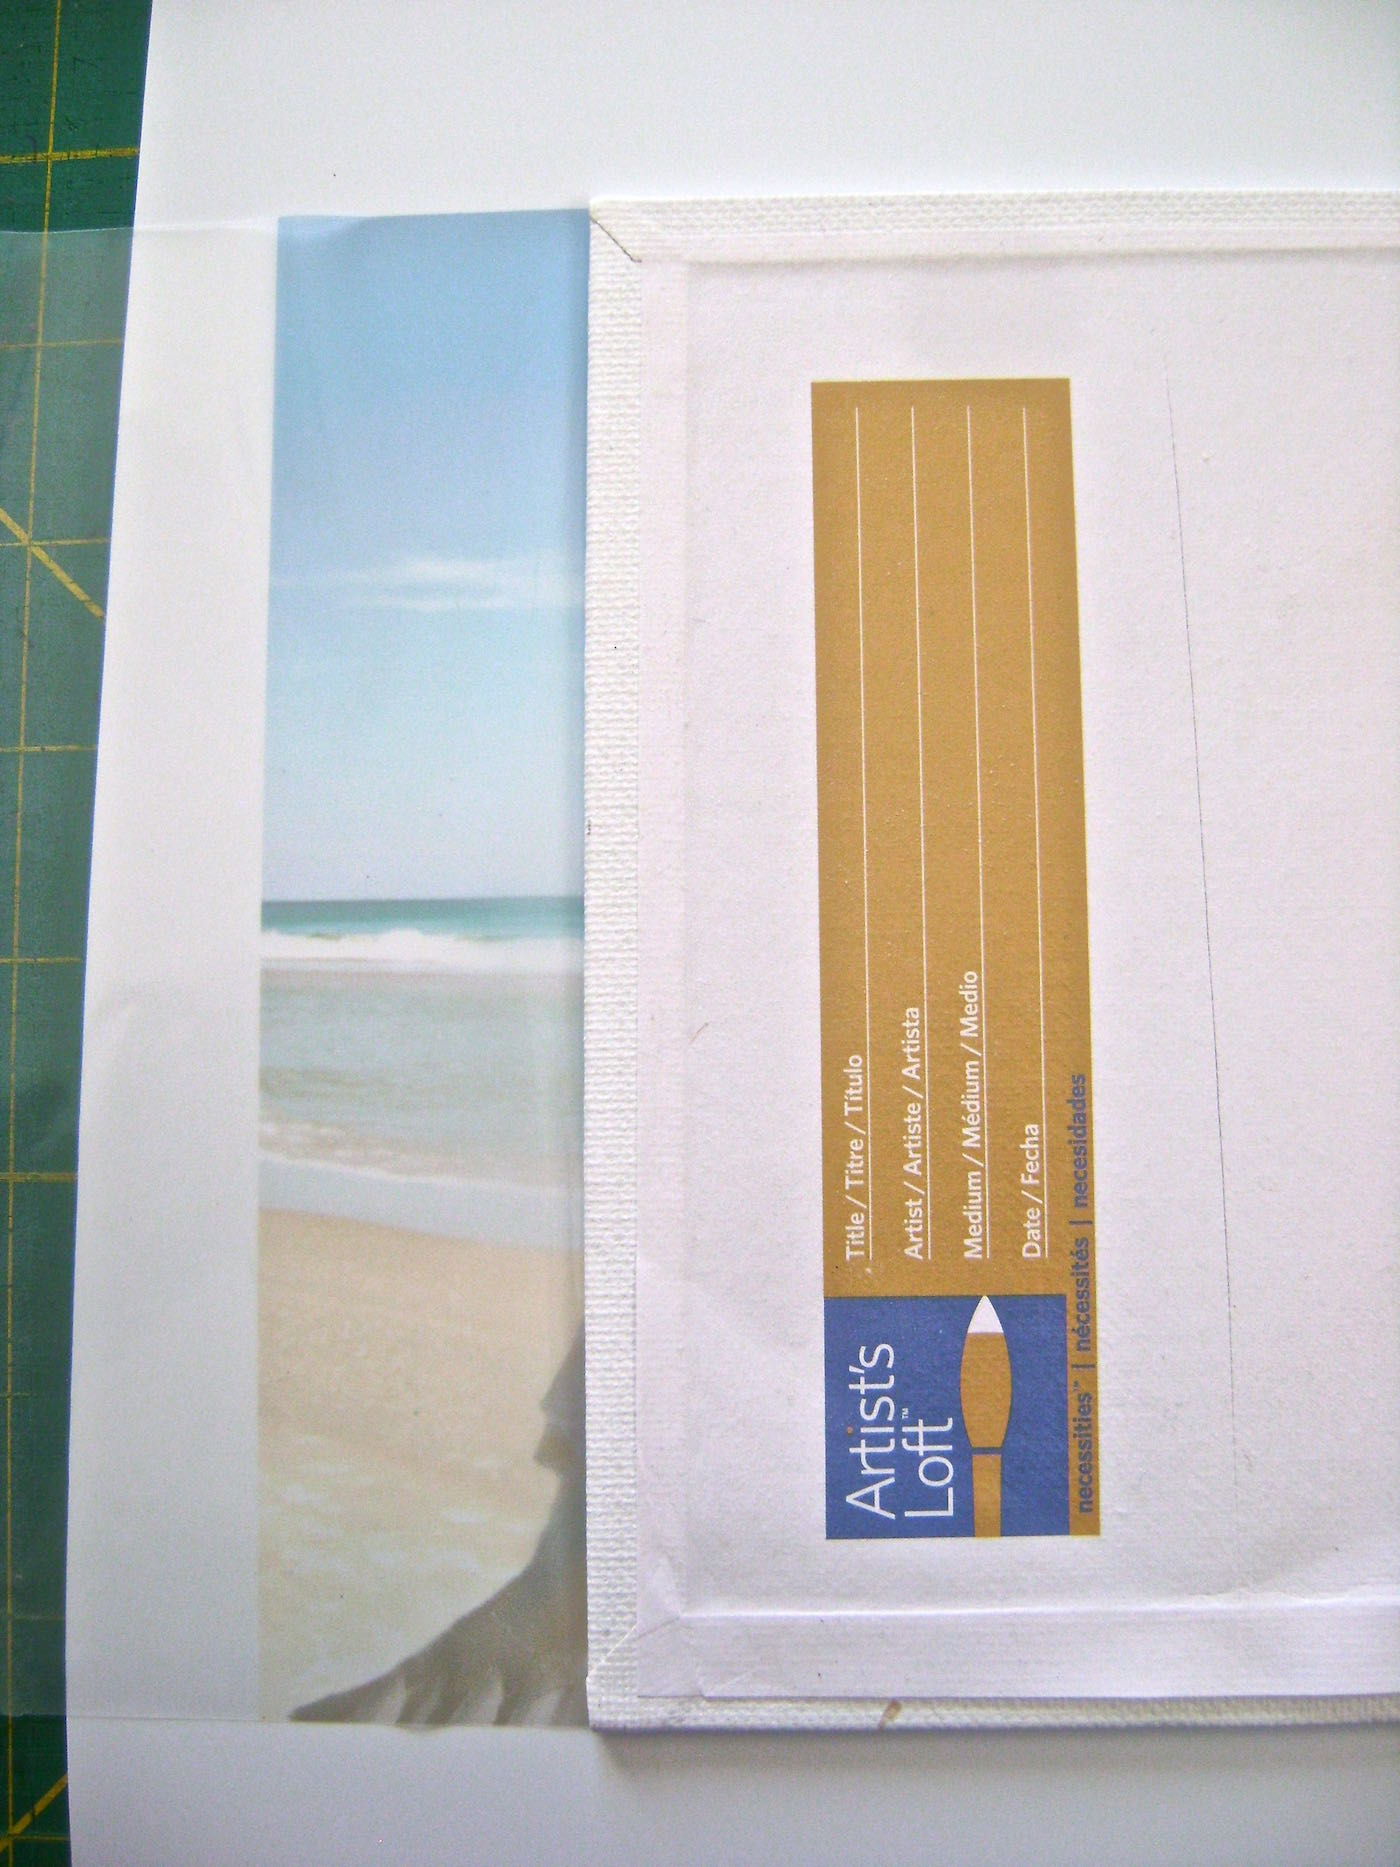 """step 10 - Spray adhesive on the flat 5"""" x 7"""" canvas. Apply adhesive to the back edges too. Align the second printed film to the top of the flat canvas as you did with the first image. Wrap the sides around to the back and press to secure it. Cut away excess."""